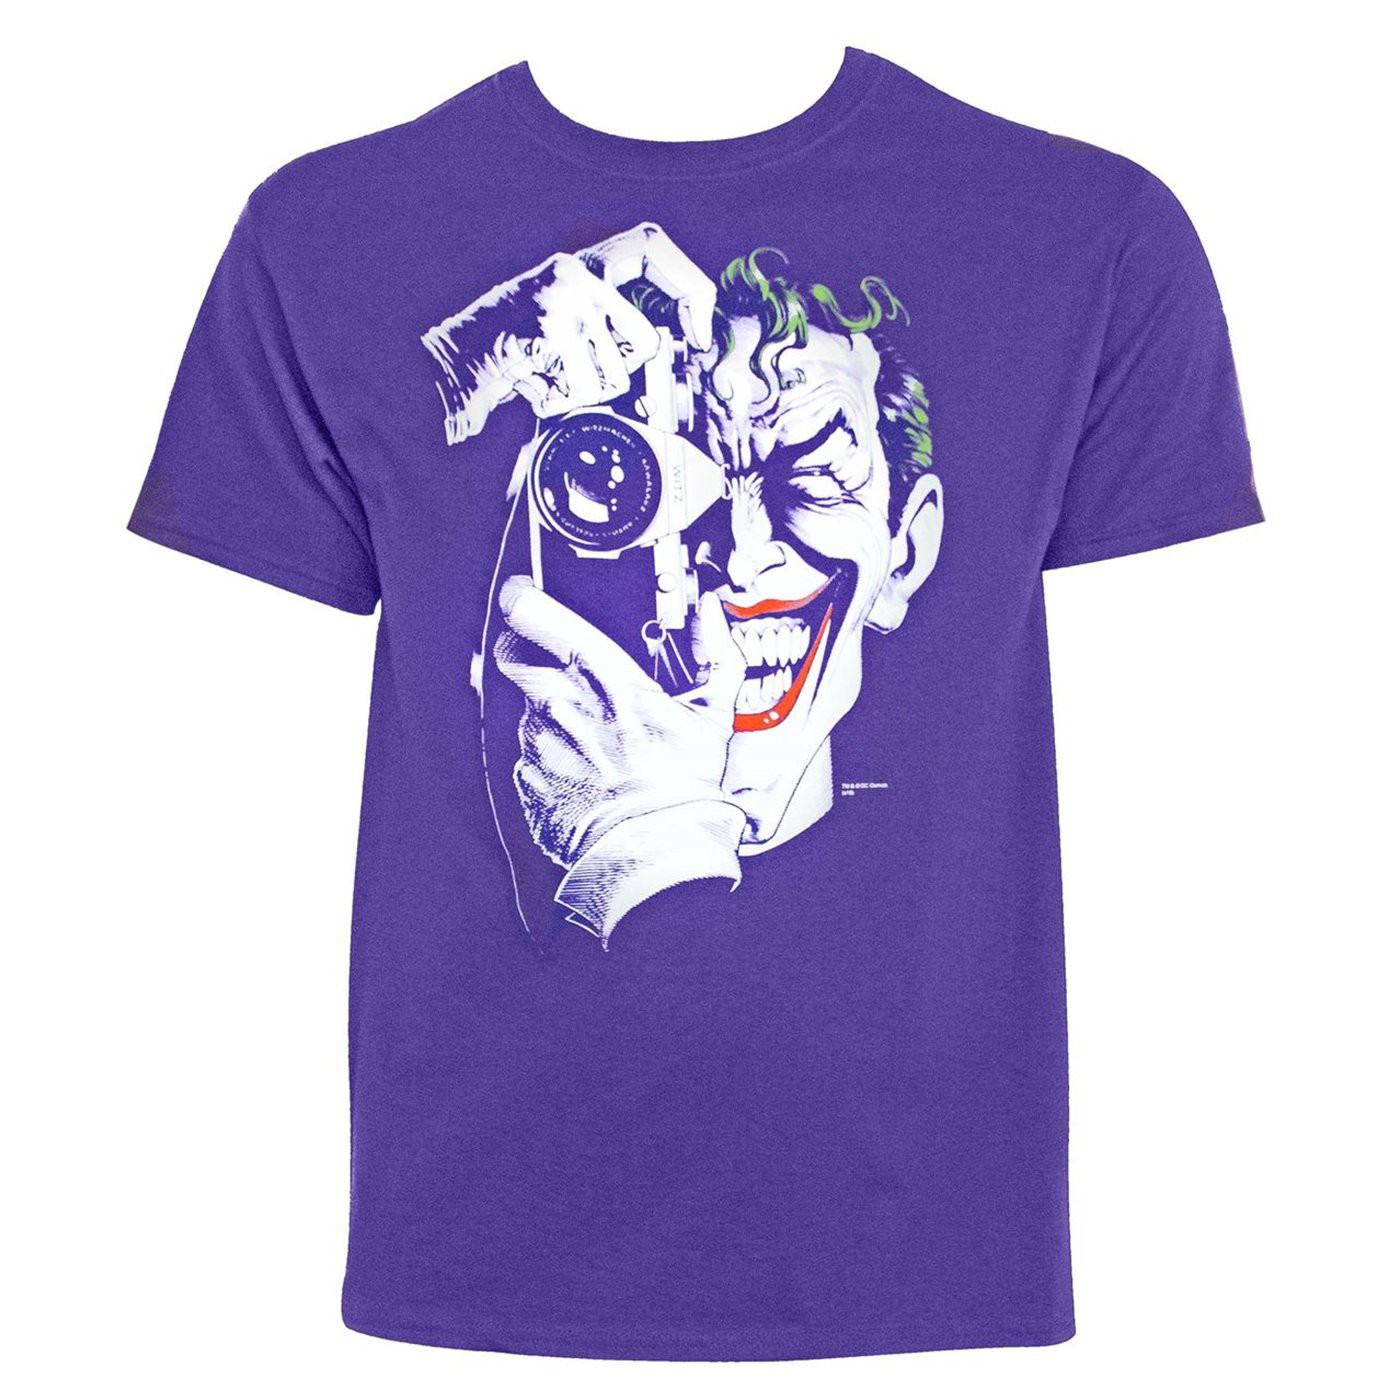 Killing Joke II by Brian Bolland Men's T-Shirt